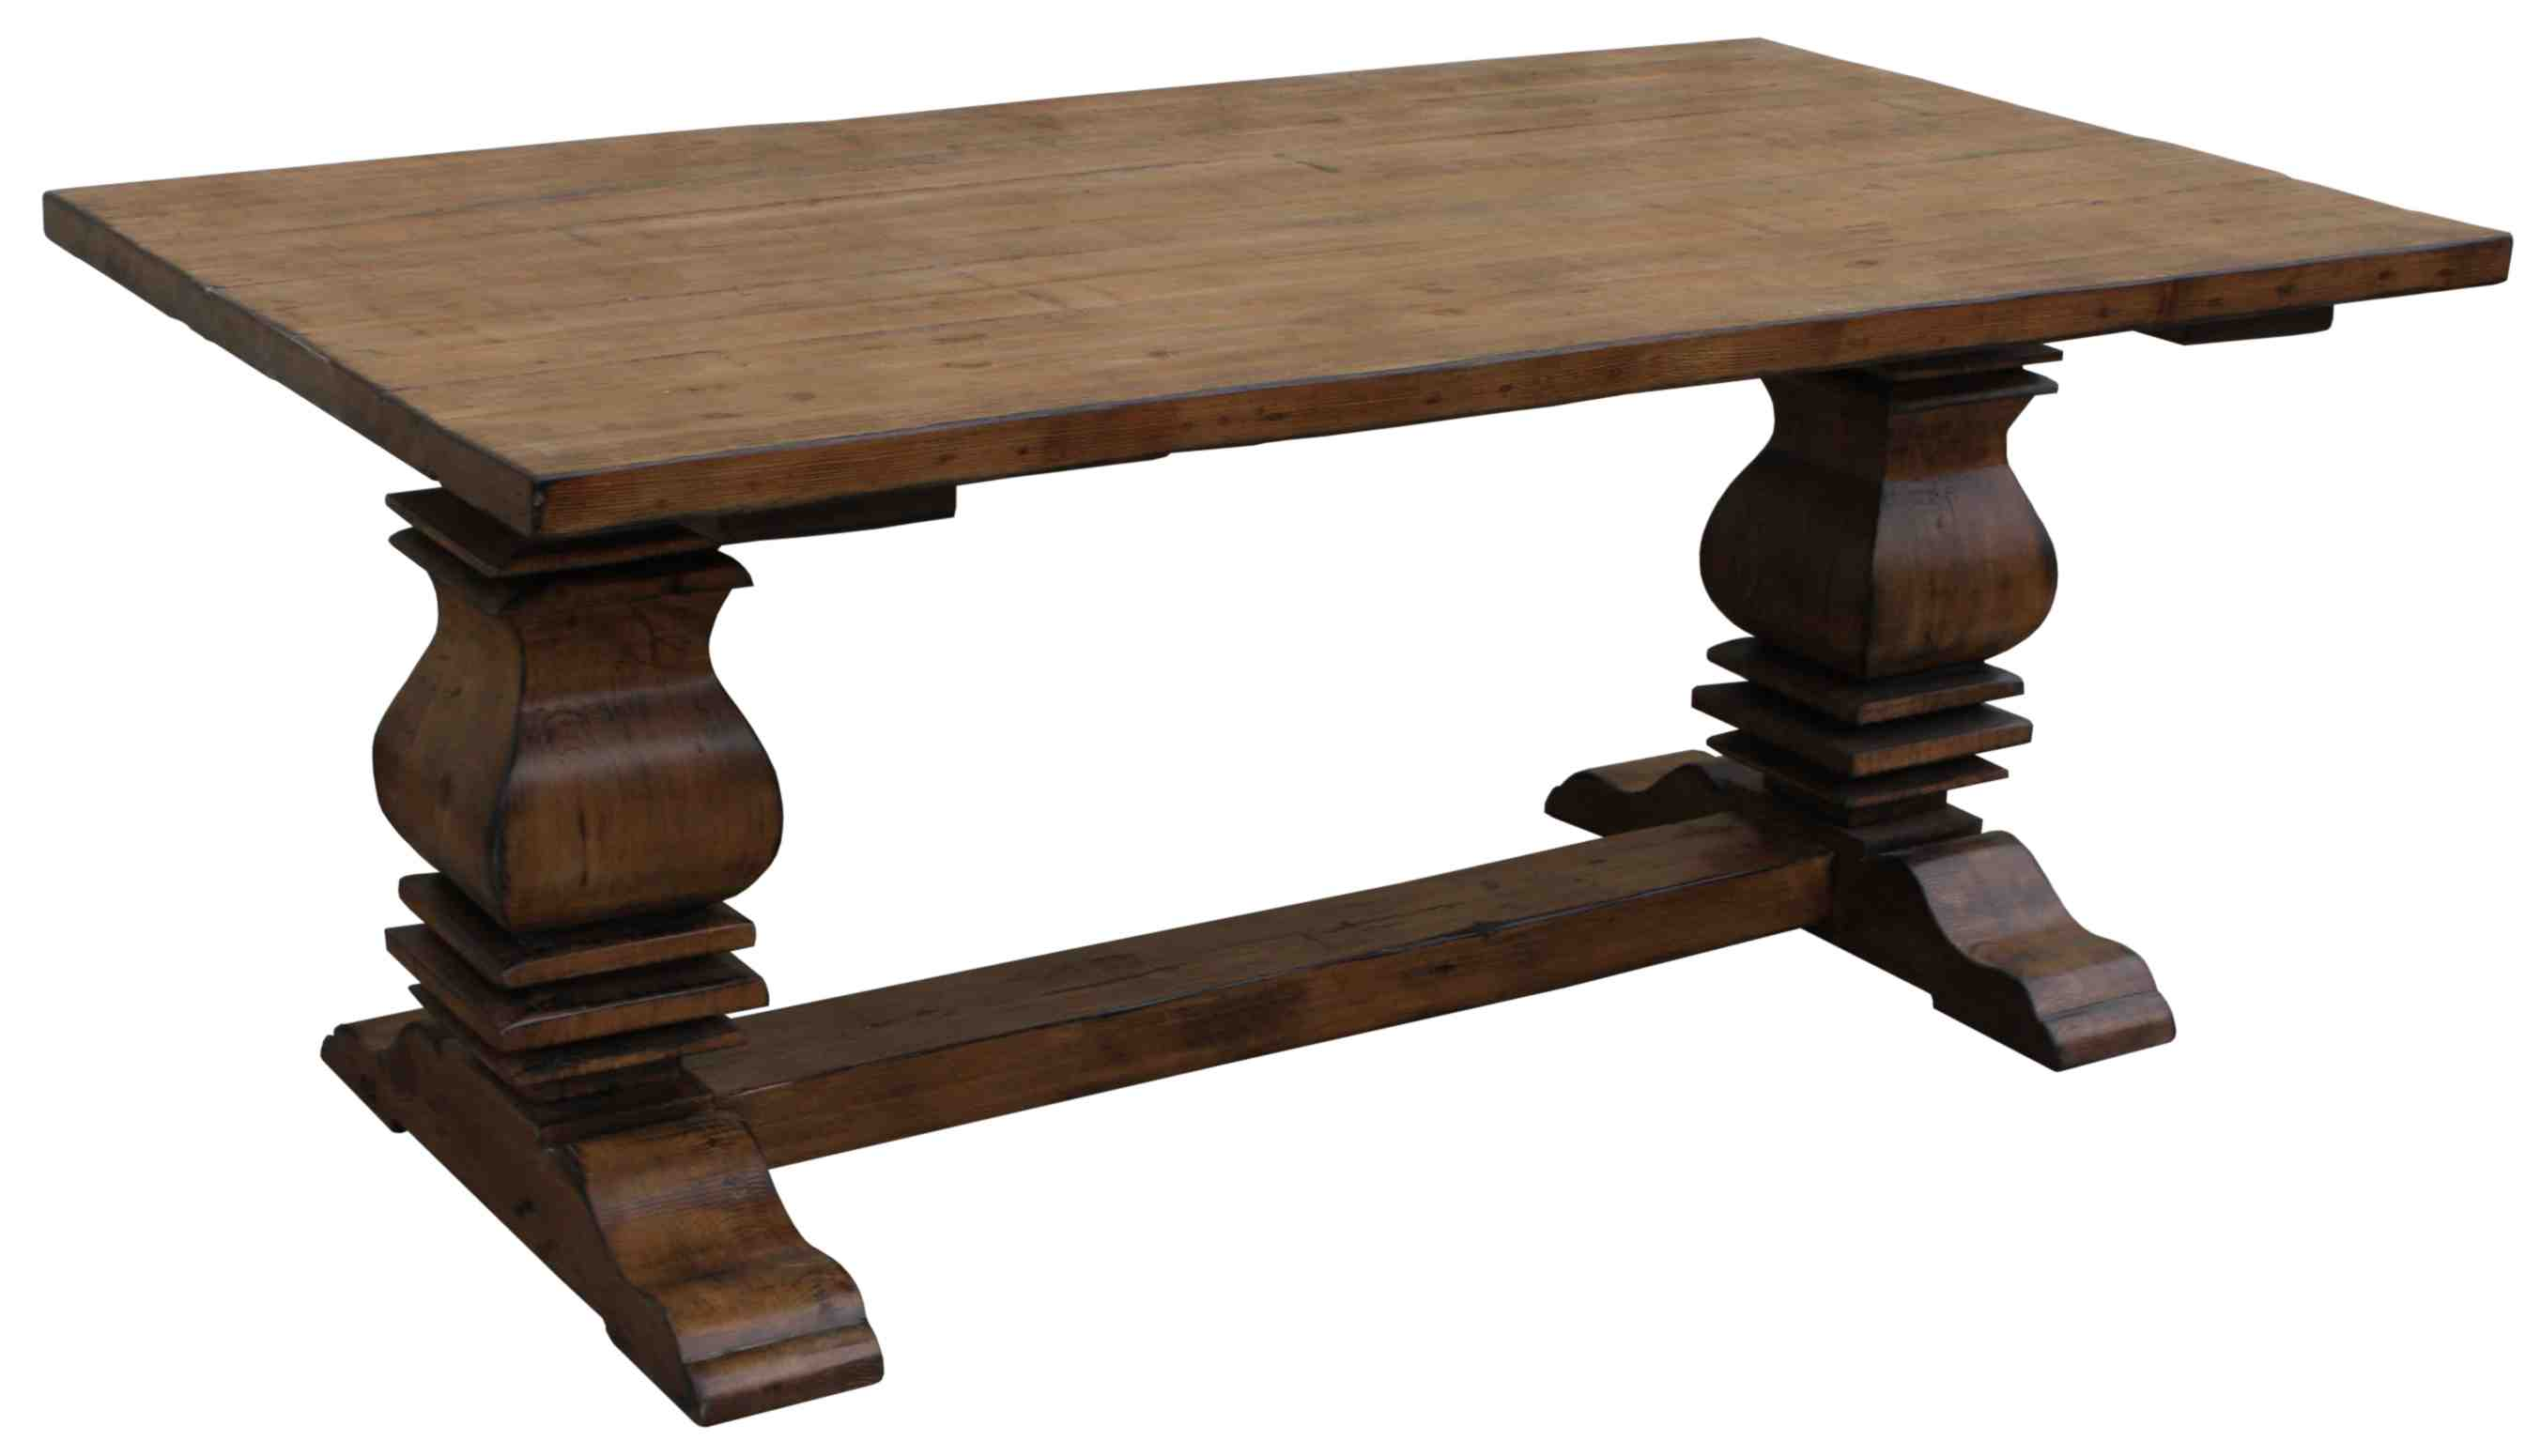 2706x1551px 8 Cool Salvaged Wood Dining Table Picture in Furniture